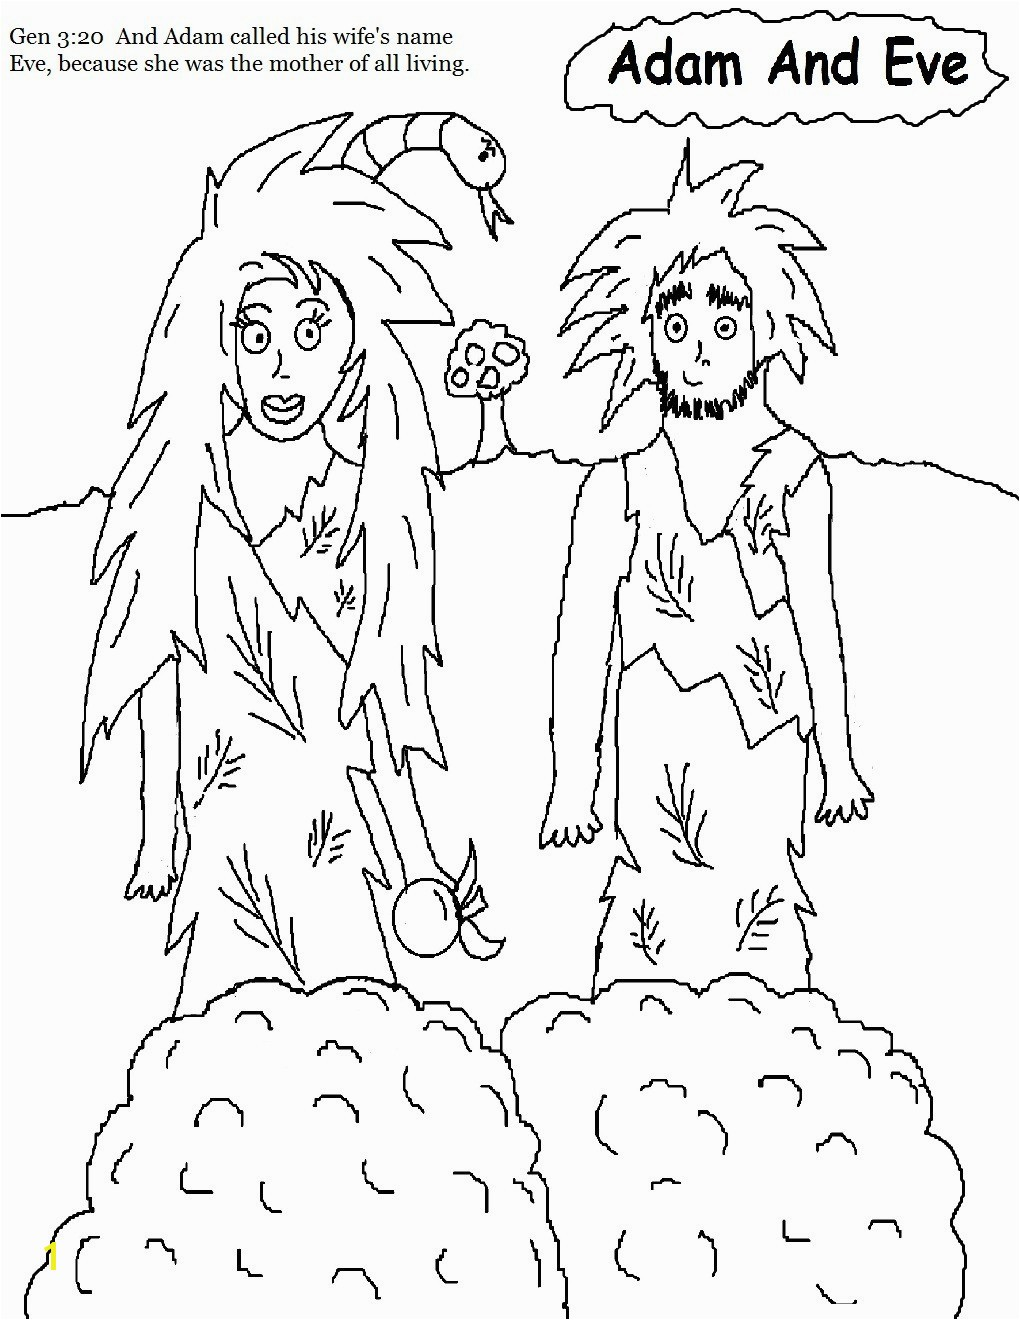 Adam And Eve Color Sheets Lovely Free Adam And Eve Coloring Pages Inspirational Bible Coloring Pages